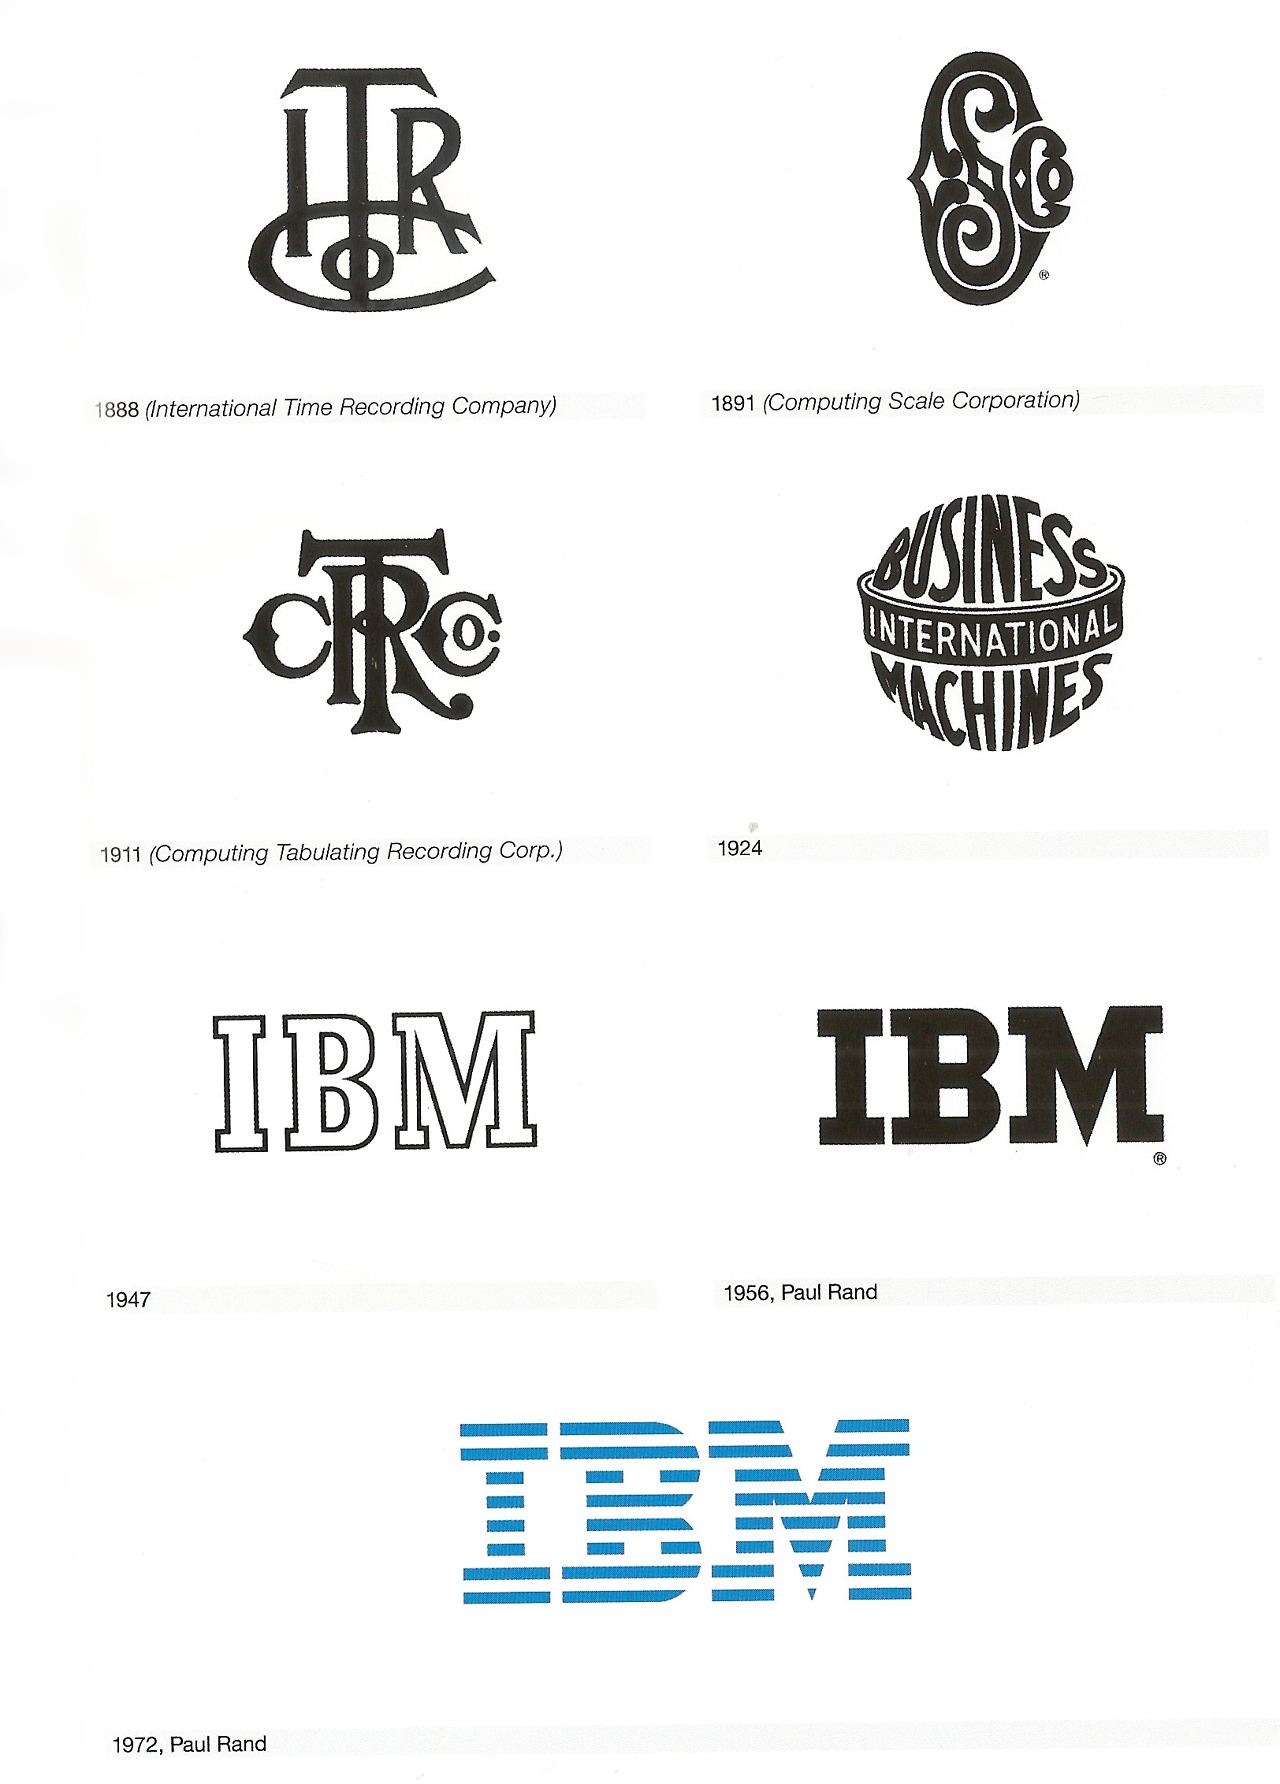 The IBM logo throughout the years. My uncle worked at IBM